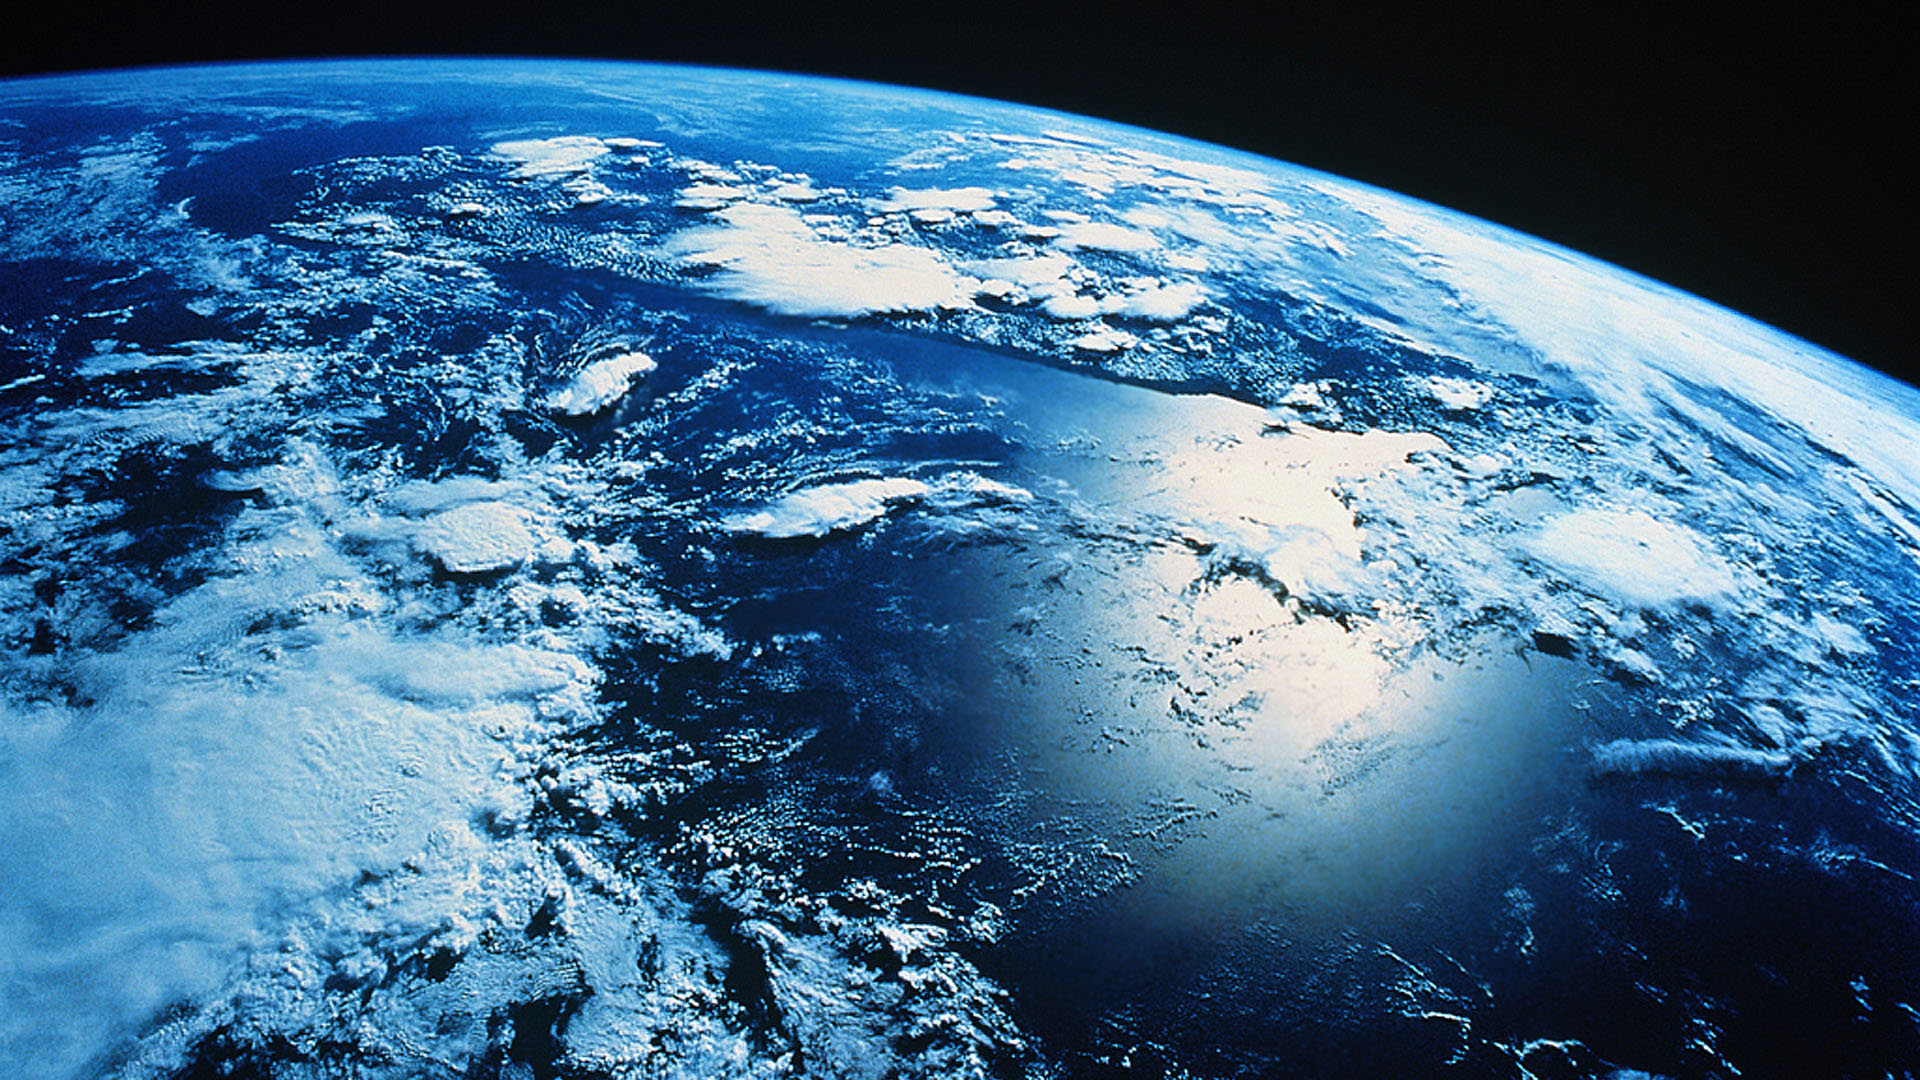 Image: http://www.desktopwallpaperhd.net/wallpapers/8/3/weather-background-earth-87235.jpg